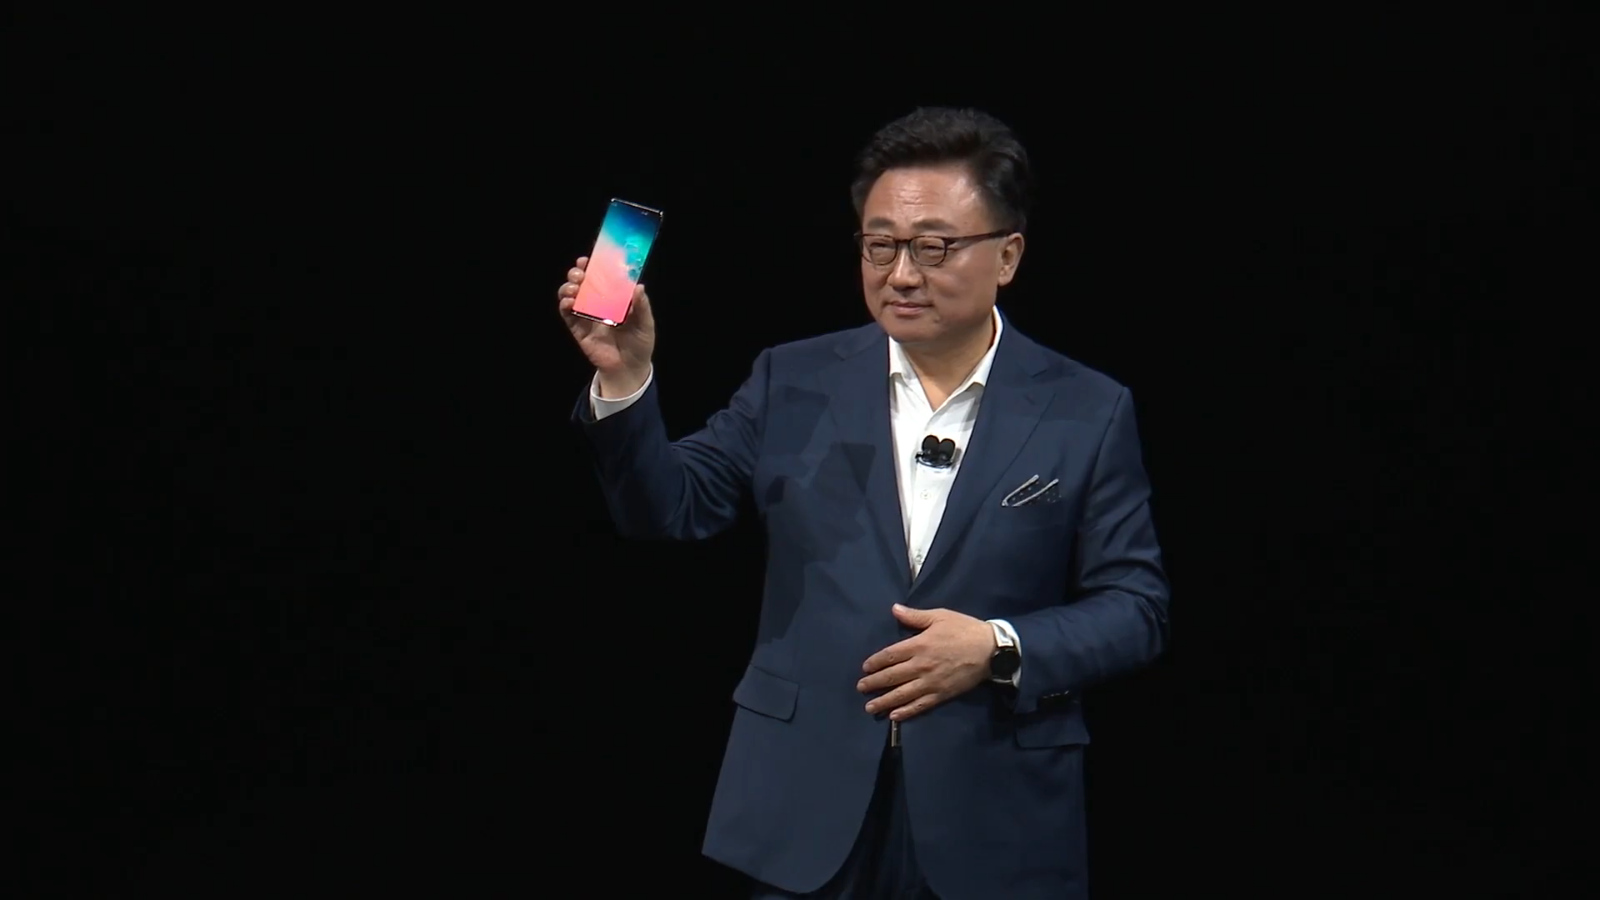 Samsung's CEO personally introduced the Galaxy S10+, not the Galaxy Fold.